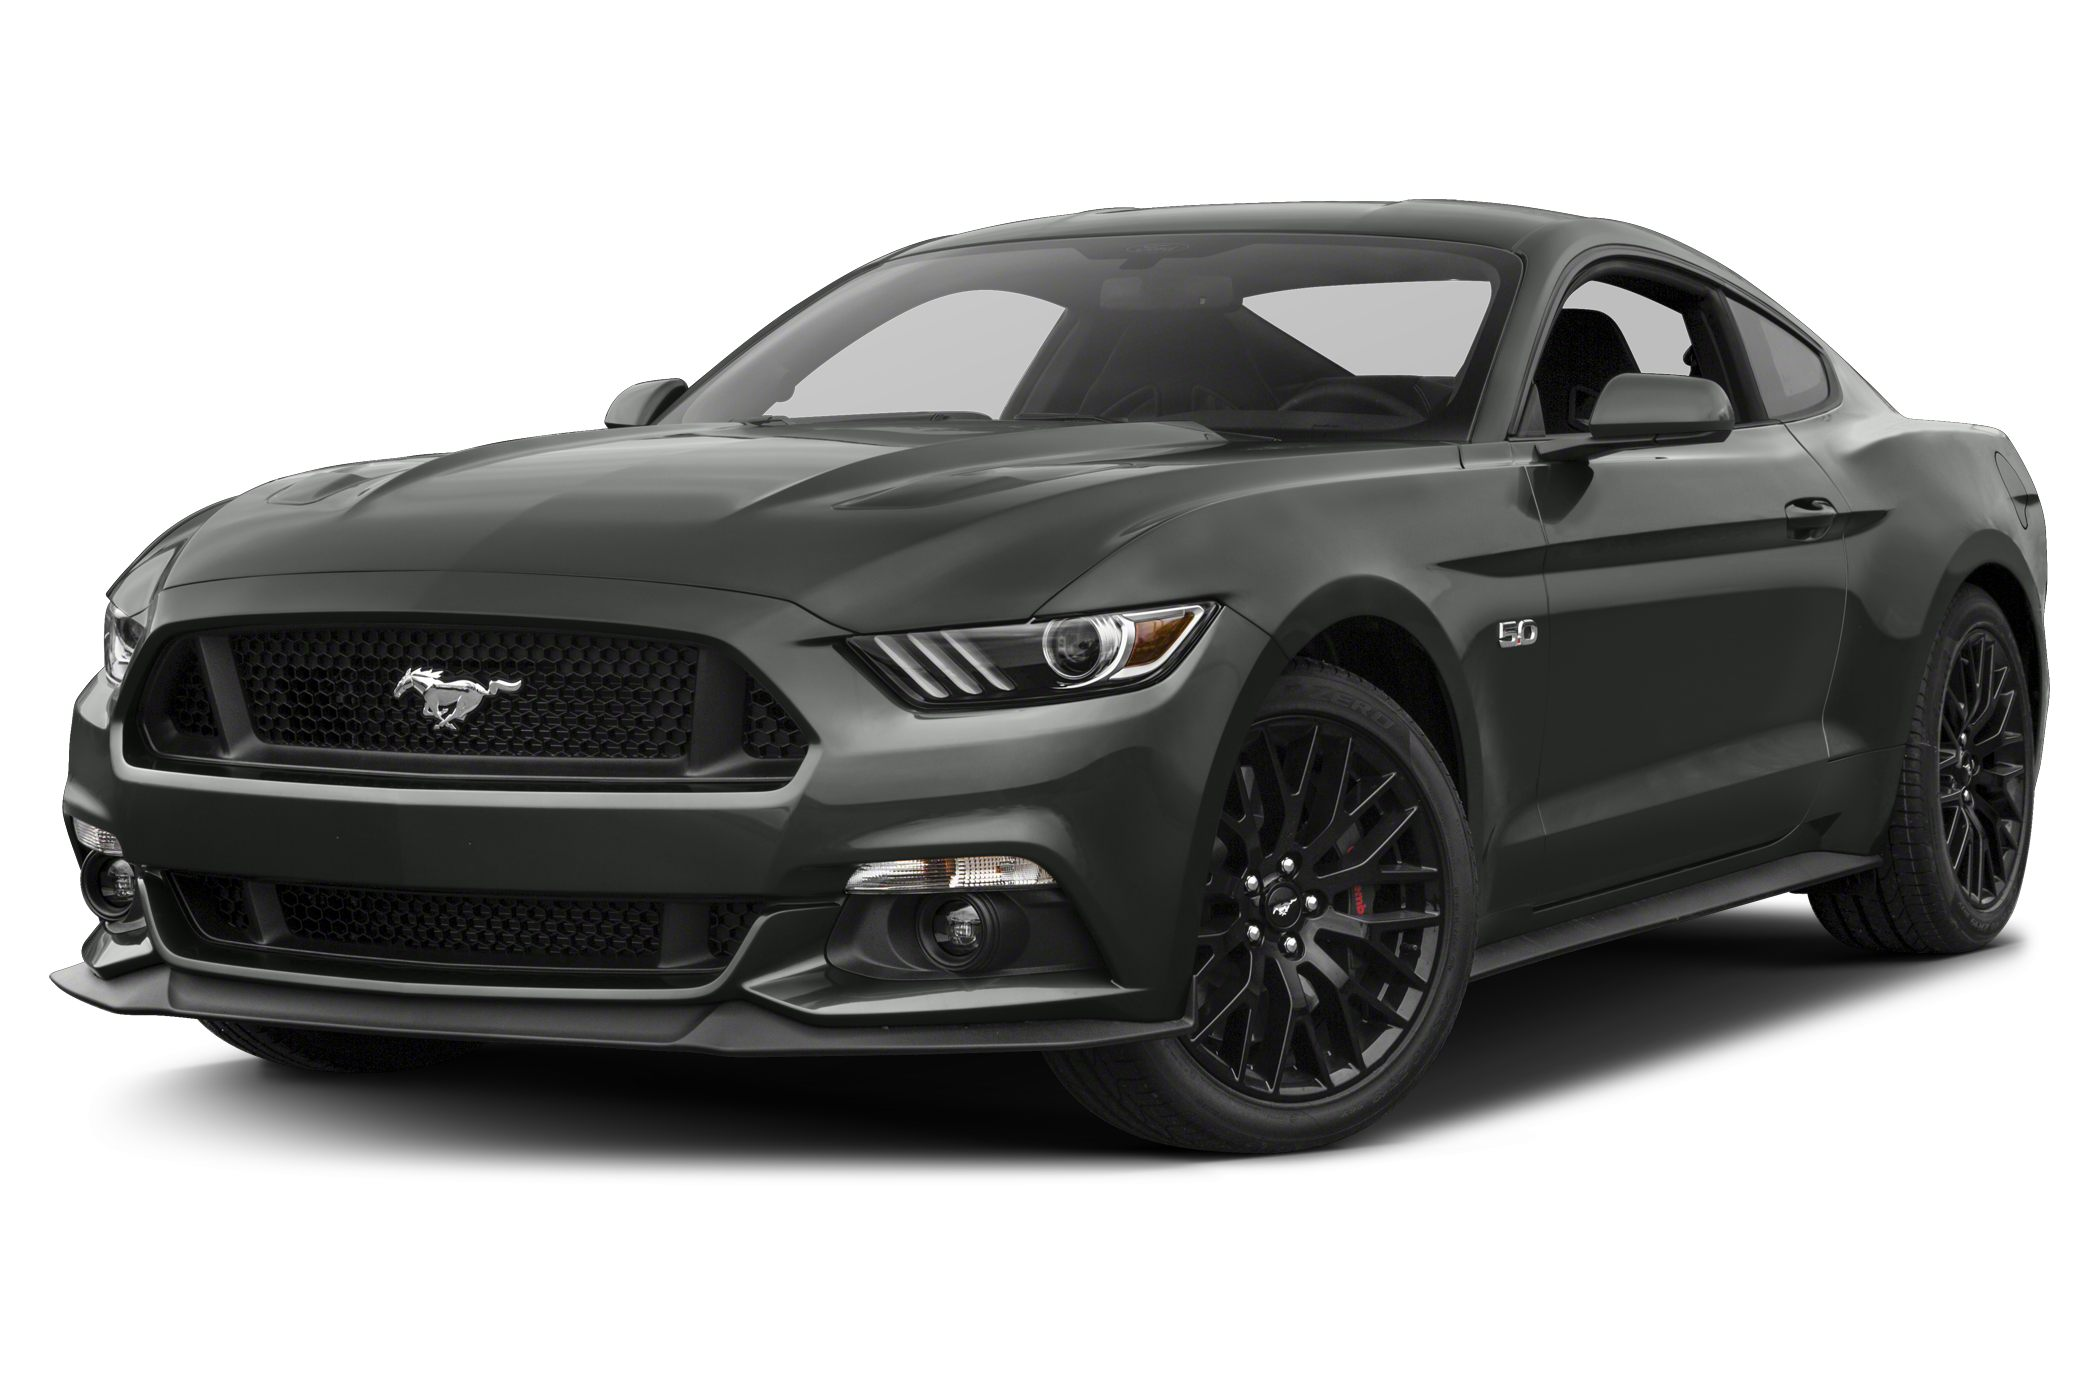 2015 Ford Mustang GT Coupe for sale in Woodstock for $41,605 with 0 miles.